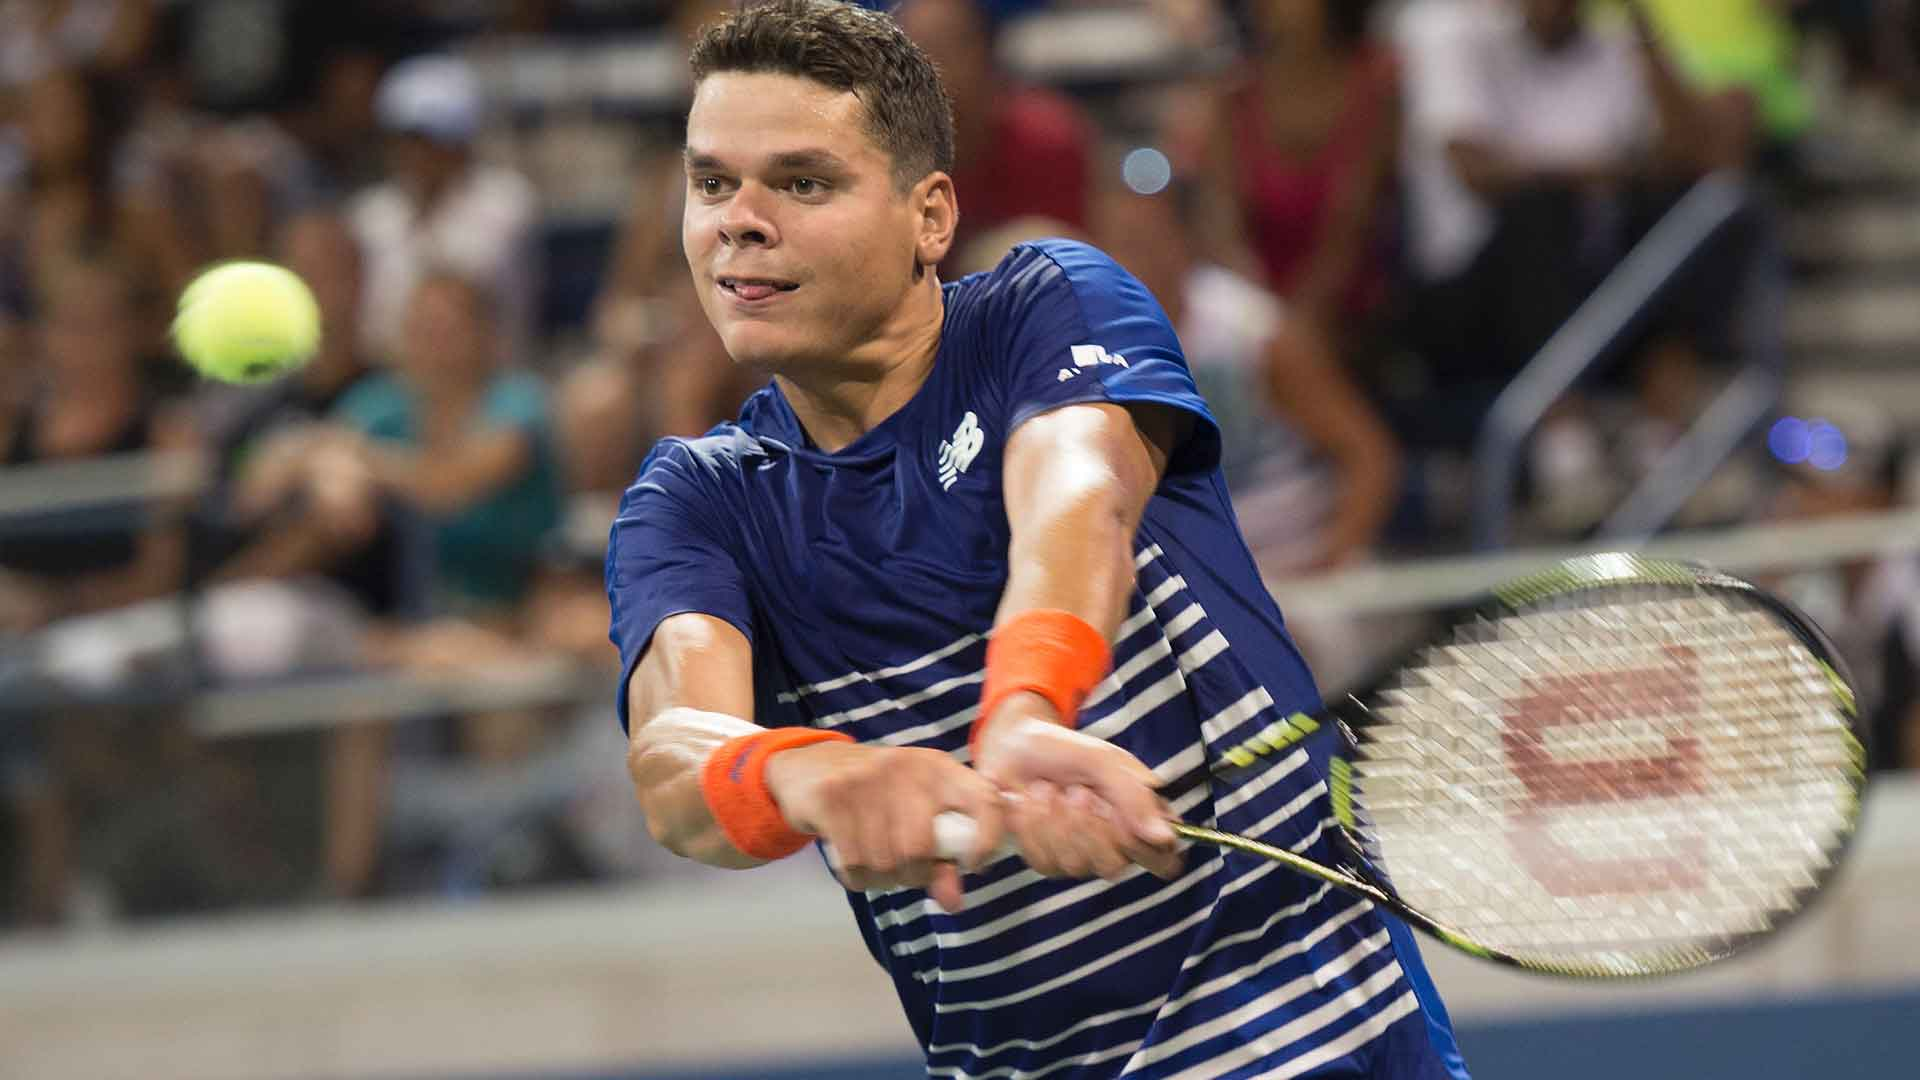 Milos Raonic downs Dustin Brown in the first round.